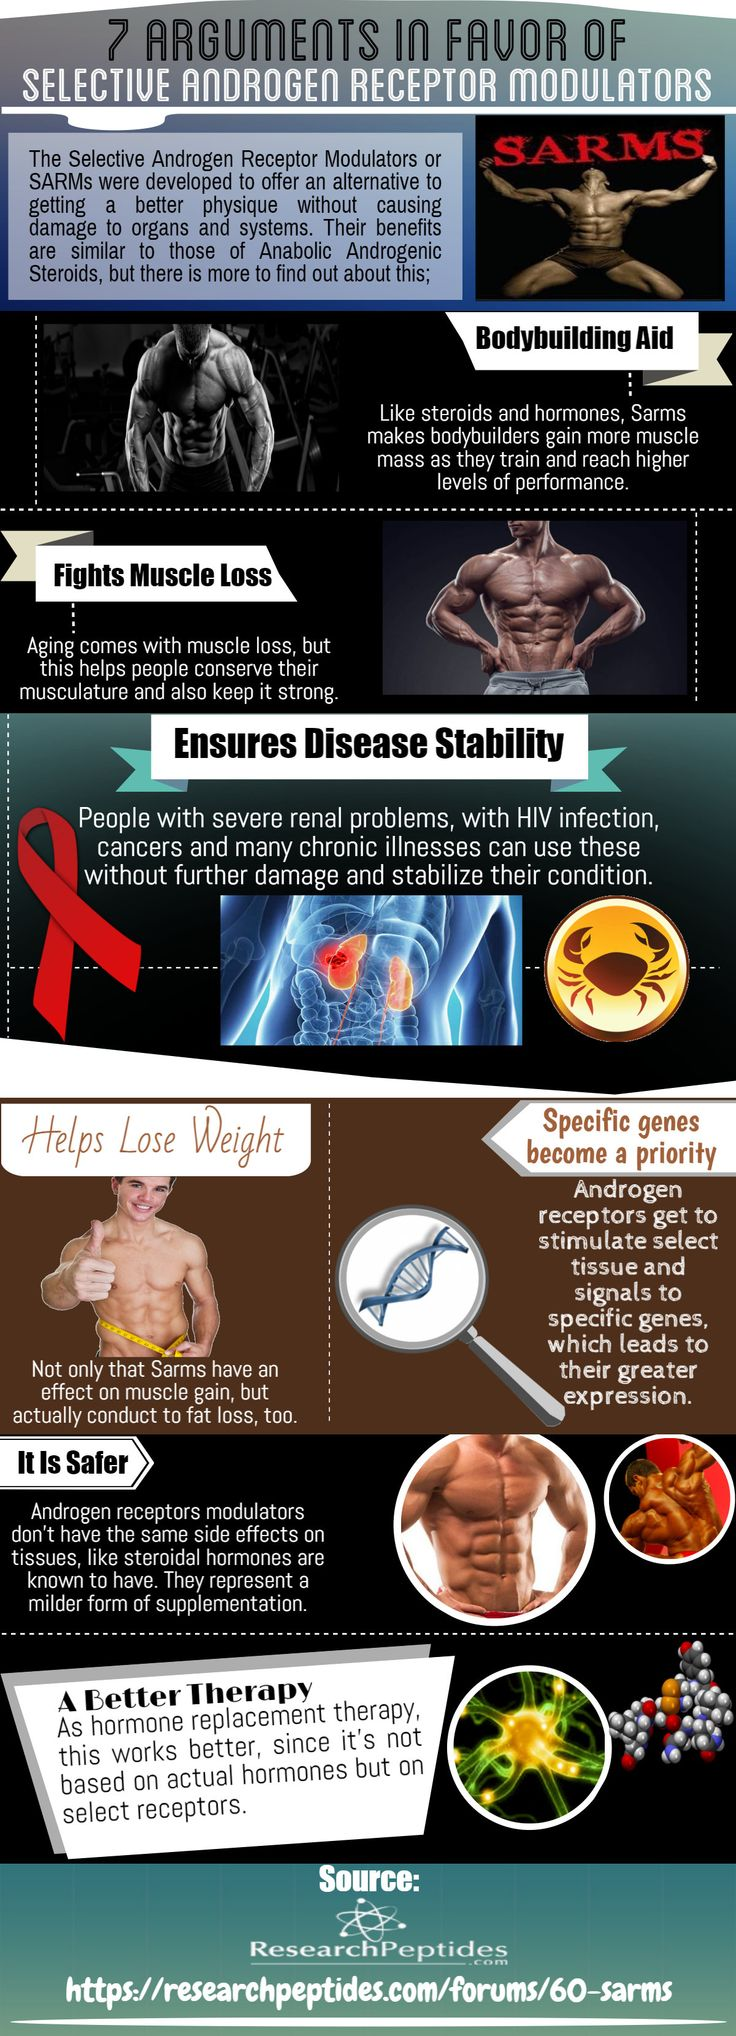 For years, body building sector has been besieged to seek a good supplement, which allows huge gains. Fortunately, there are several products introduced in the market, but are accompanied with side effects. However, SARM have proven its effectiveness in the past years, significantly. For More Information about Sarms Forum, please check https://researchpeptides.com/forums/60-sarms